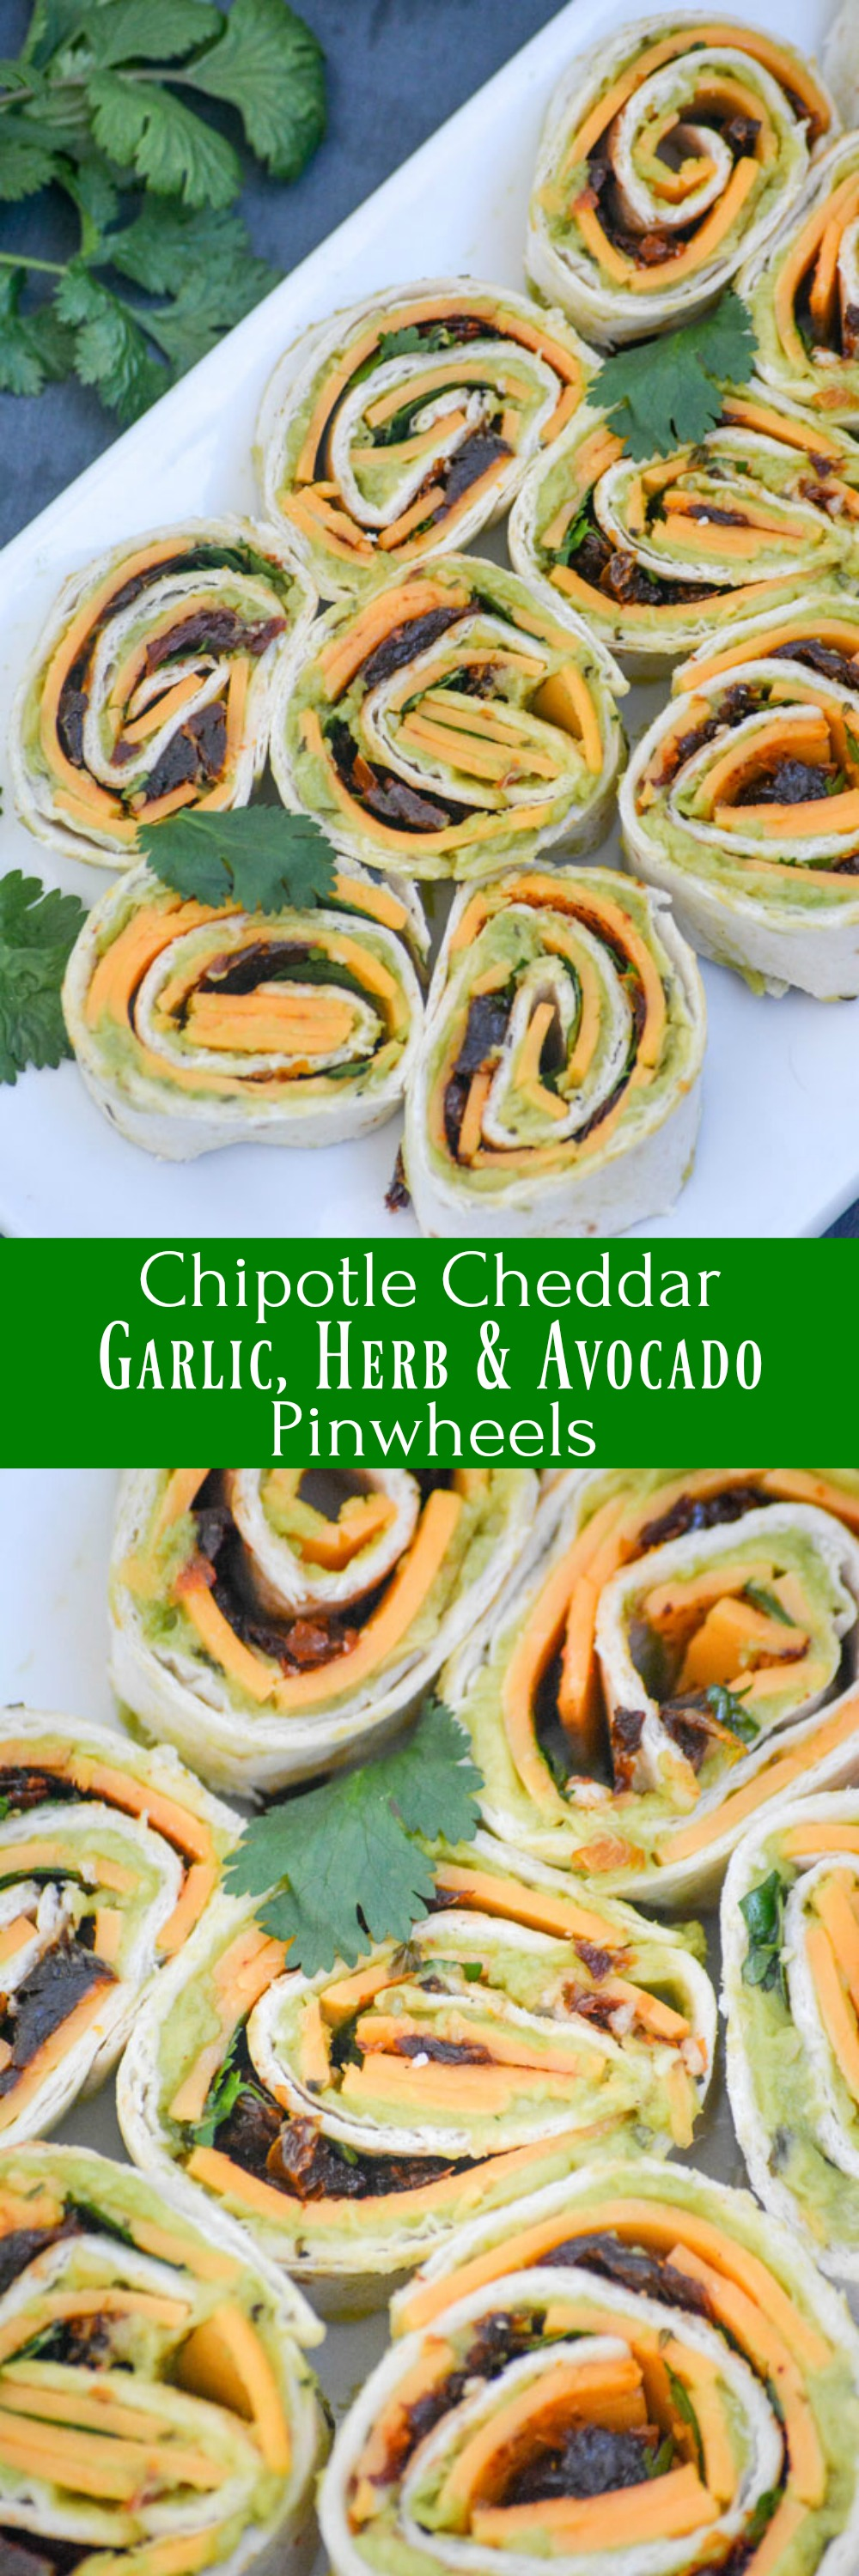 Chipotle Cheddar Garlic Herb Avocado Pinwheels are quick, easy, and scrumptious finger food that's full of flavor. Knowing they can be made ahead of time, or at the last minute, makes them a great option for an appetizer, snack, or even as part of the main meal when you've got hungry guests to feed.